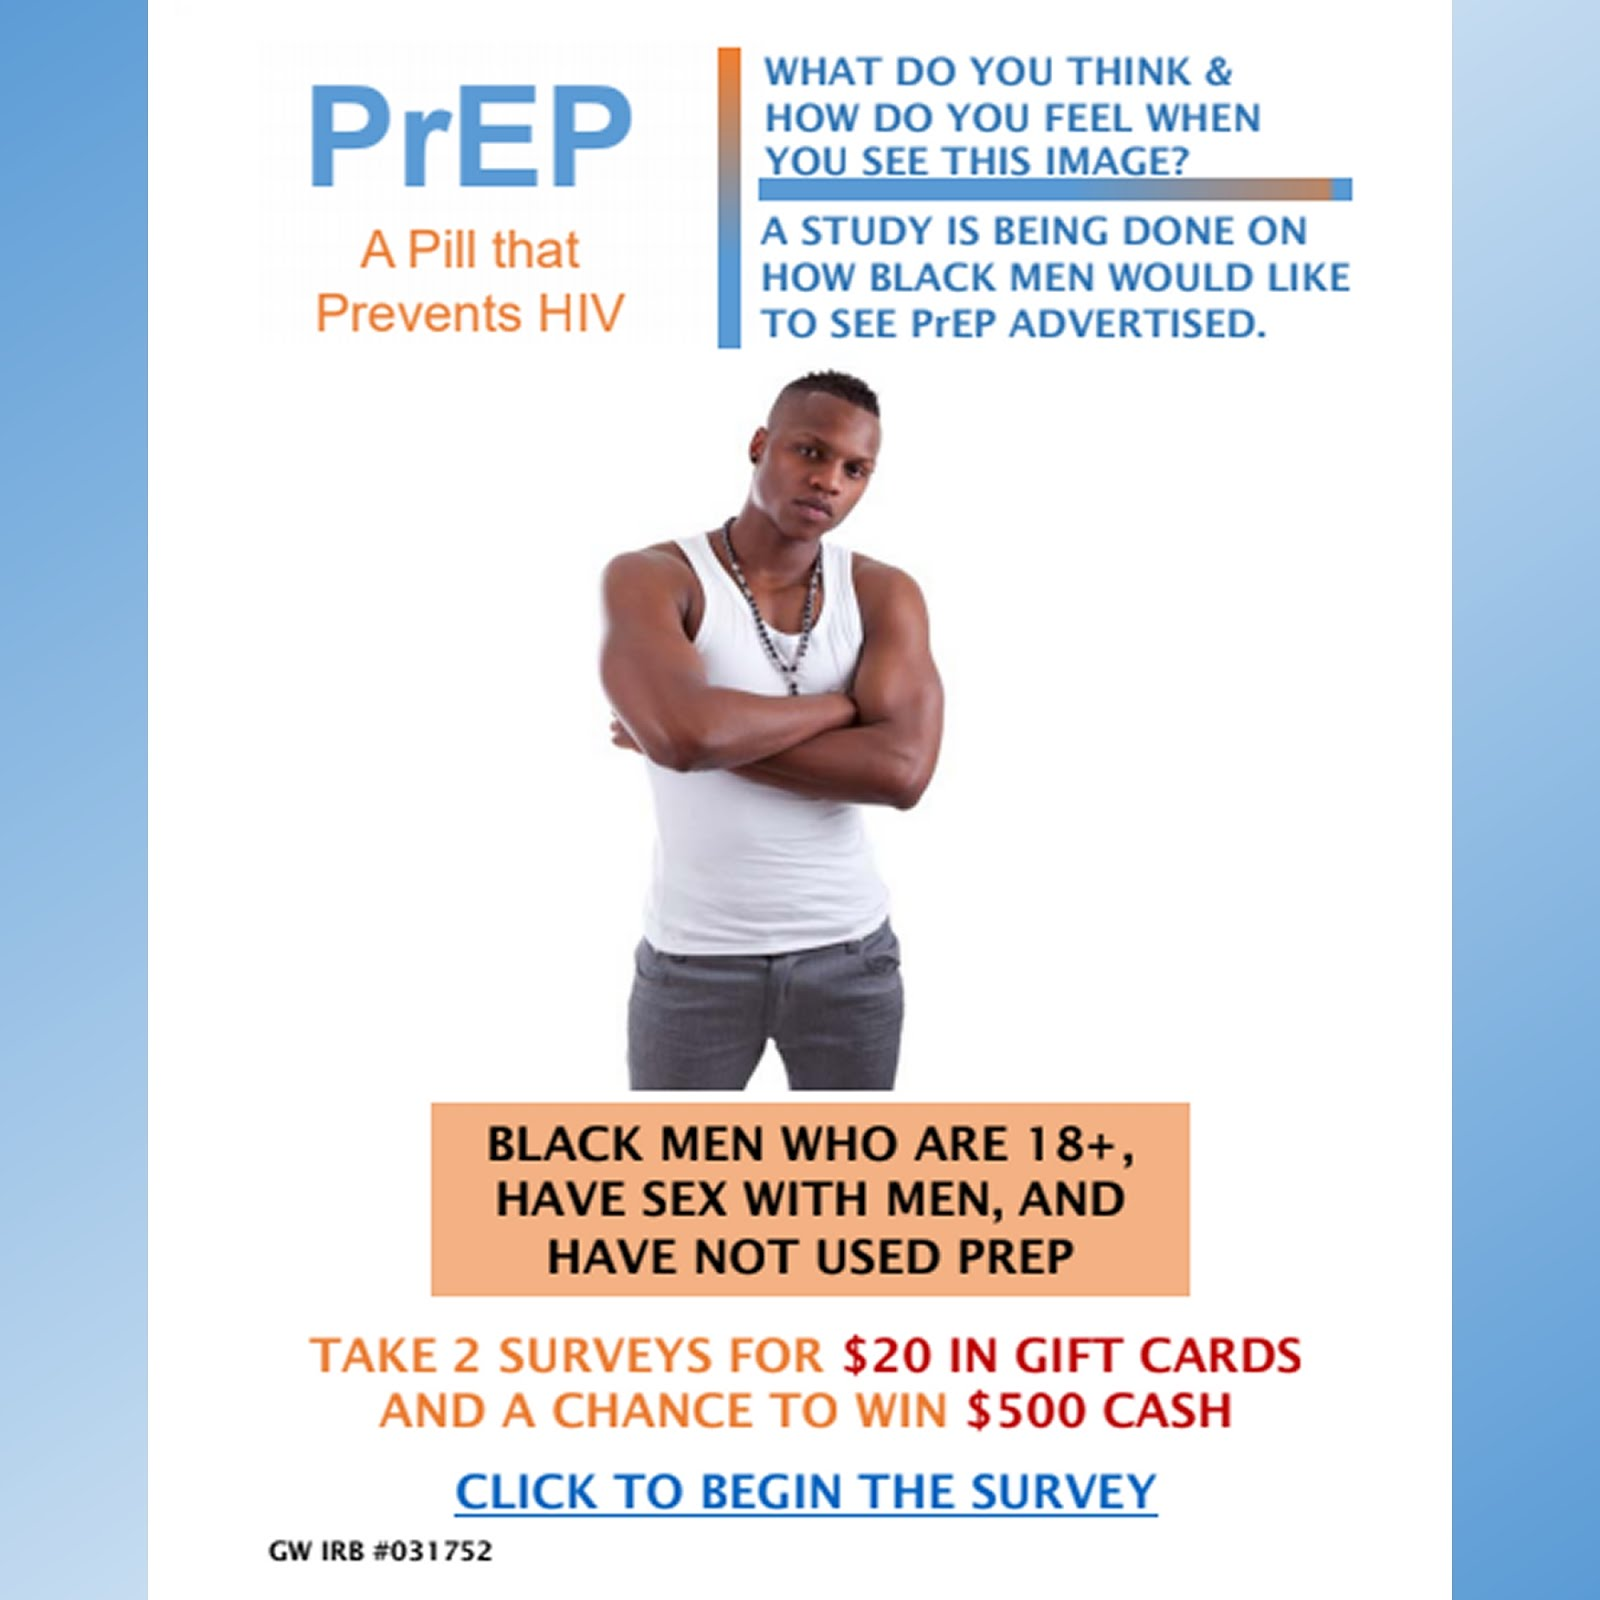 Research Study for Black MSM: Earn $20 in Gift Cards | The